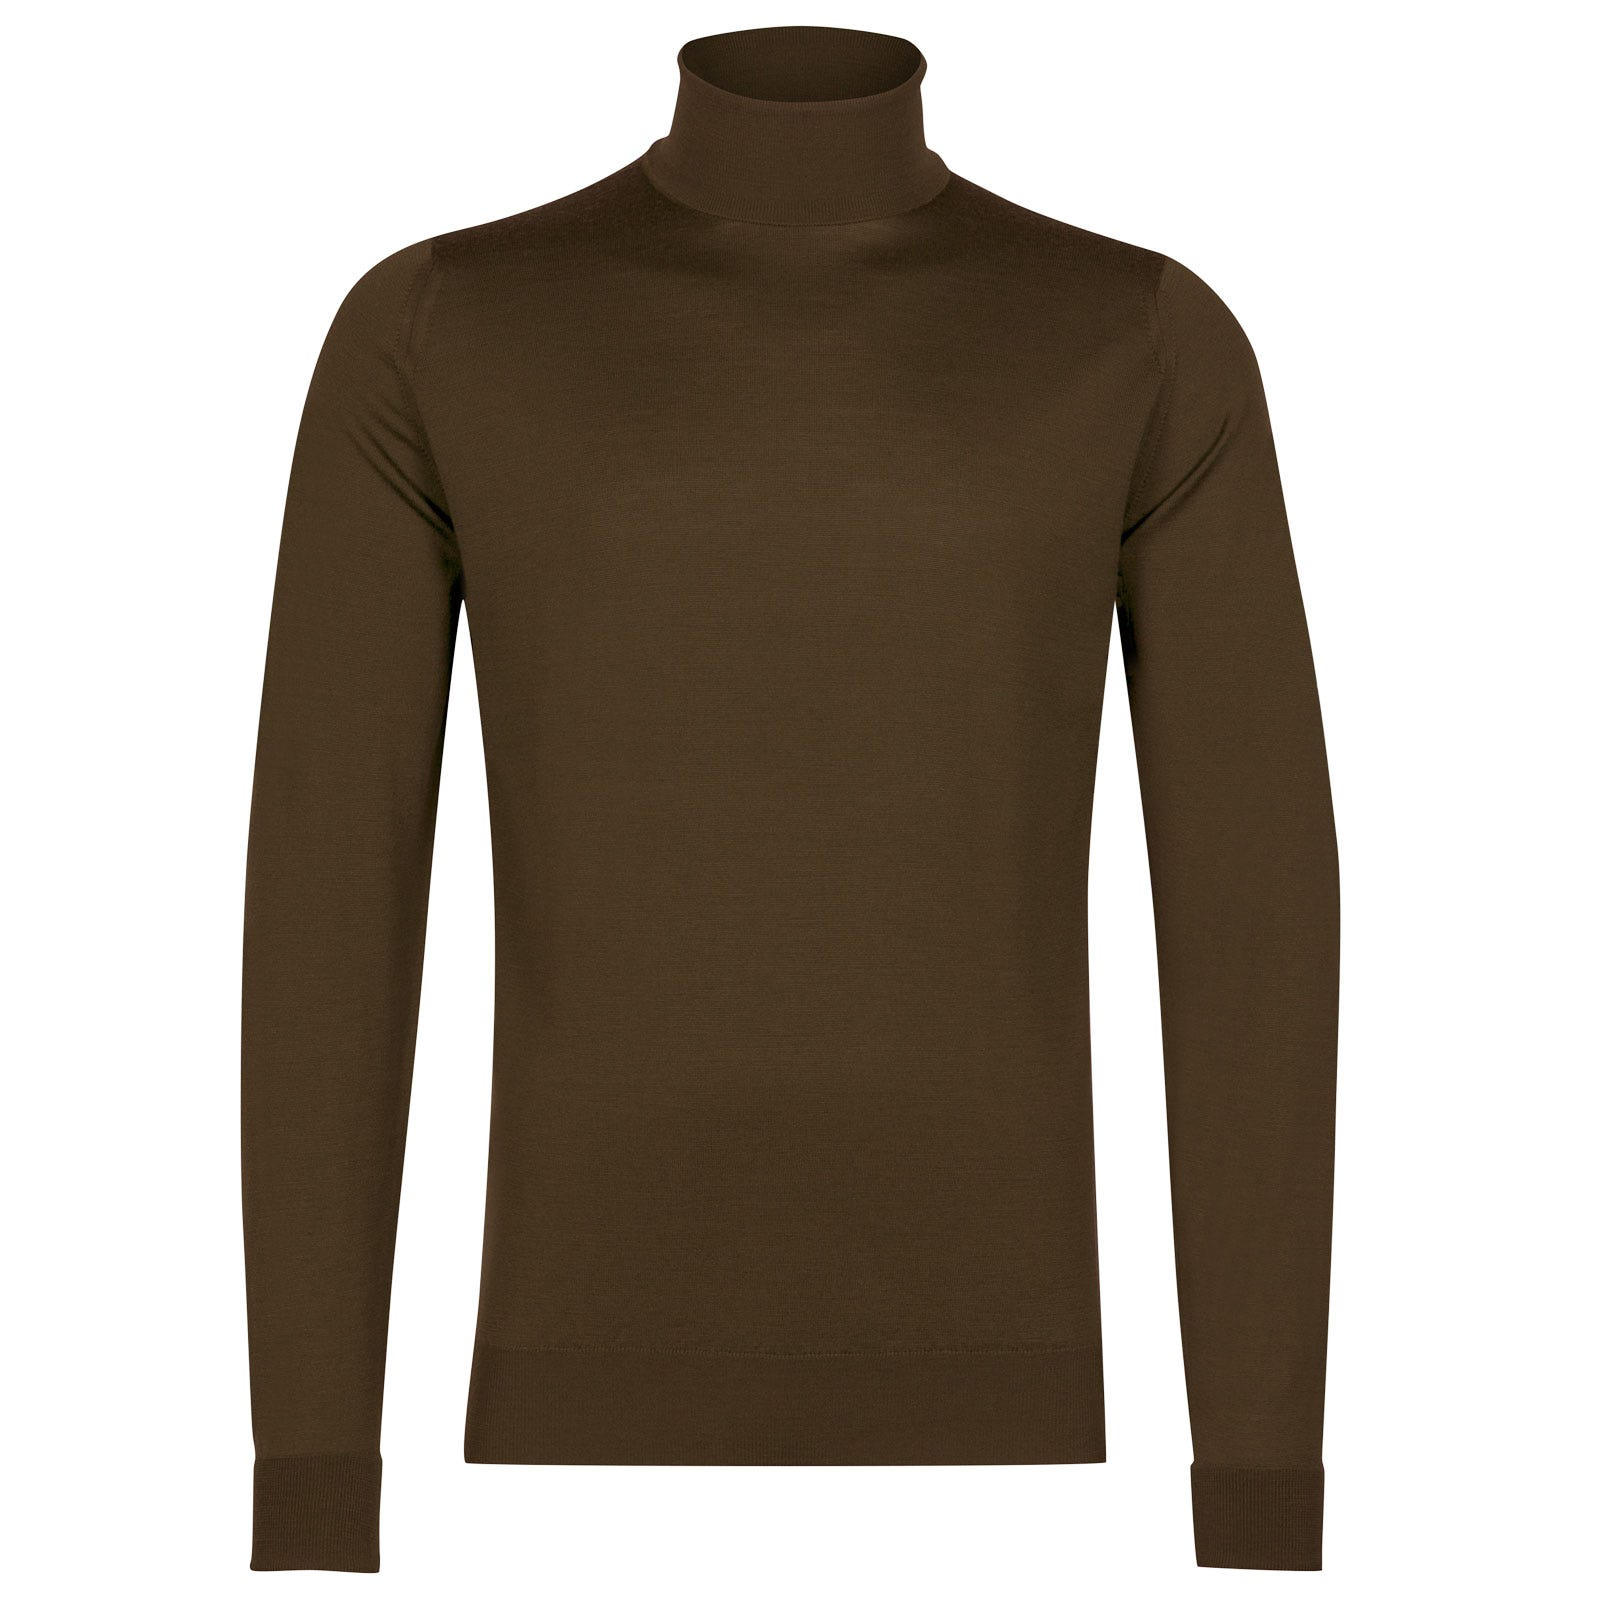 John Smedley richards Merino Wool Pullover in Kielder Green-XL